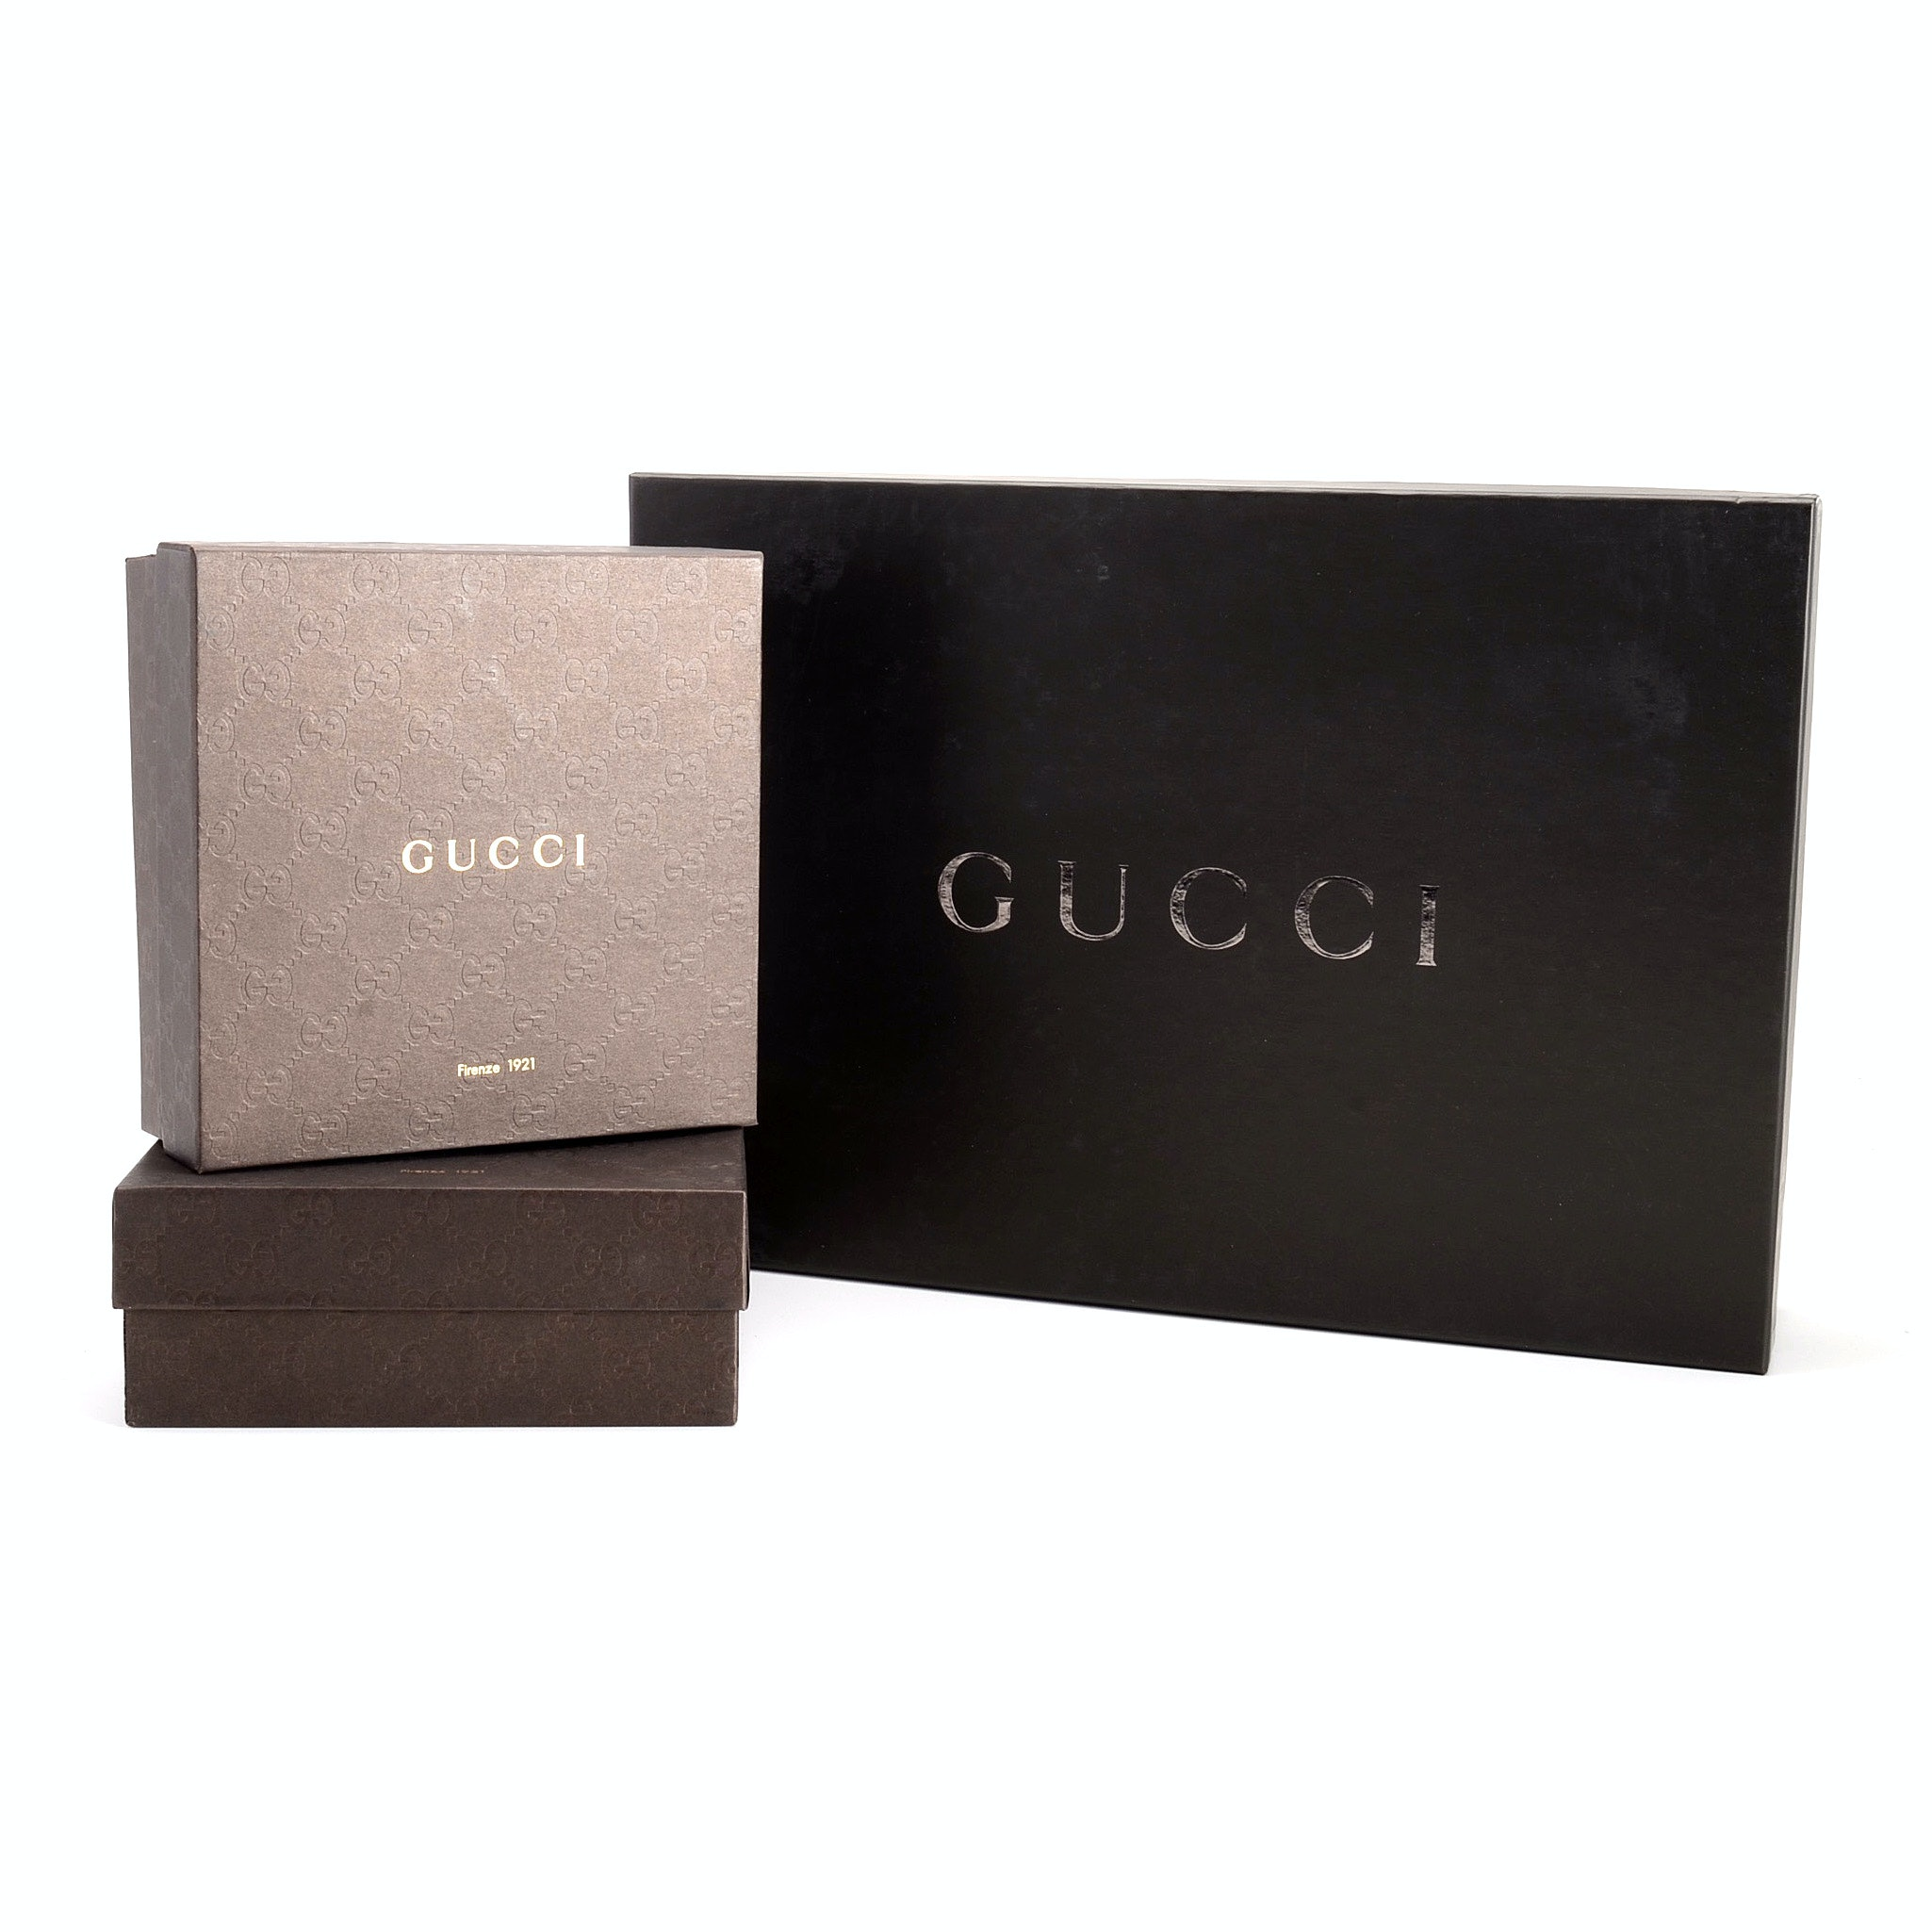 Gucci Gift Boxes